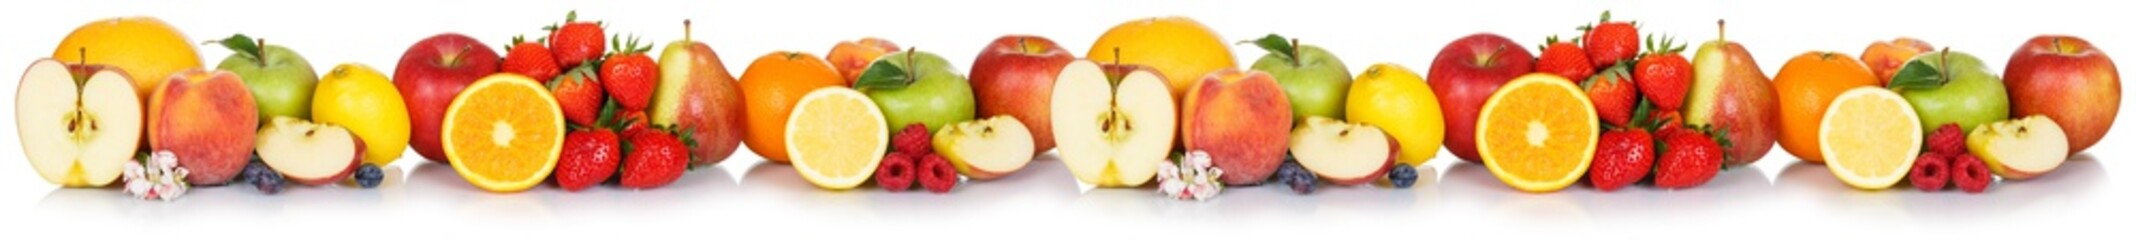 Fresh fruits collection apple apples banner orange strawberries berries fruit isolated on white in...